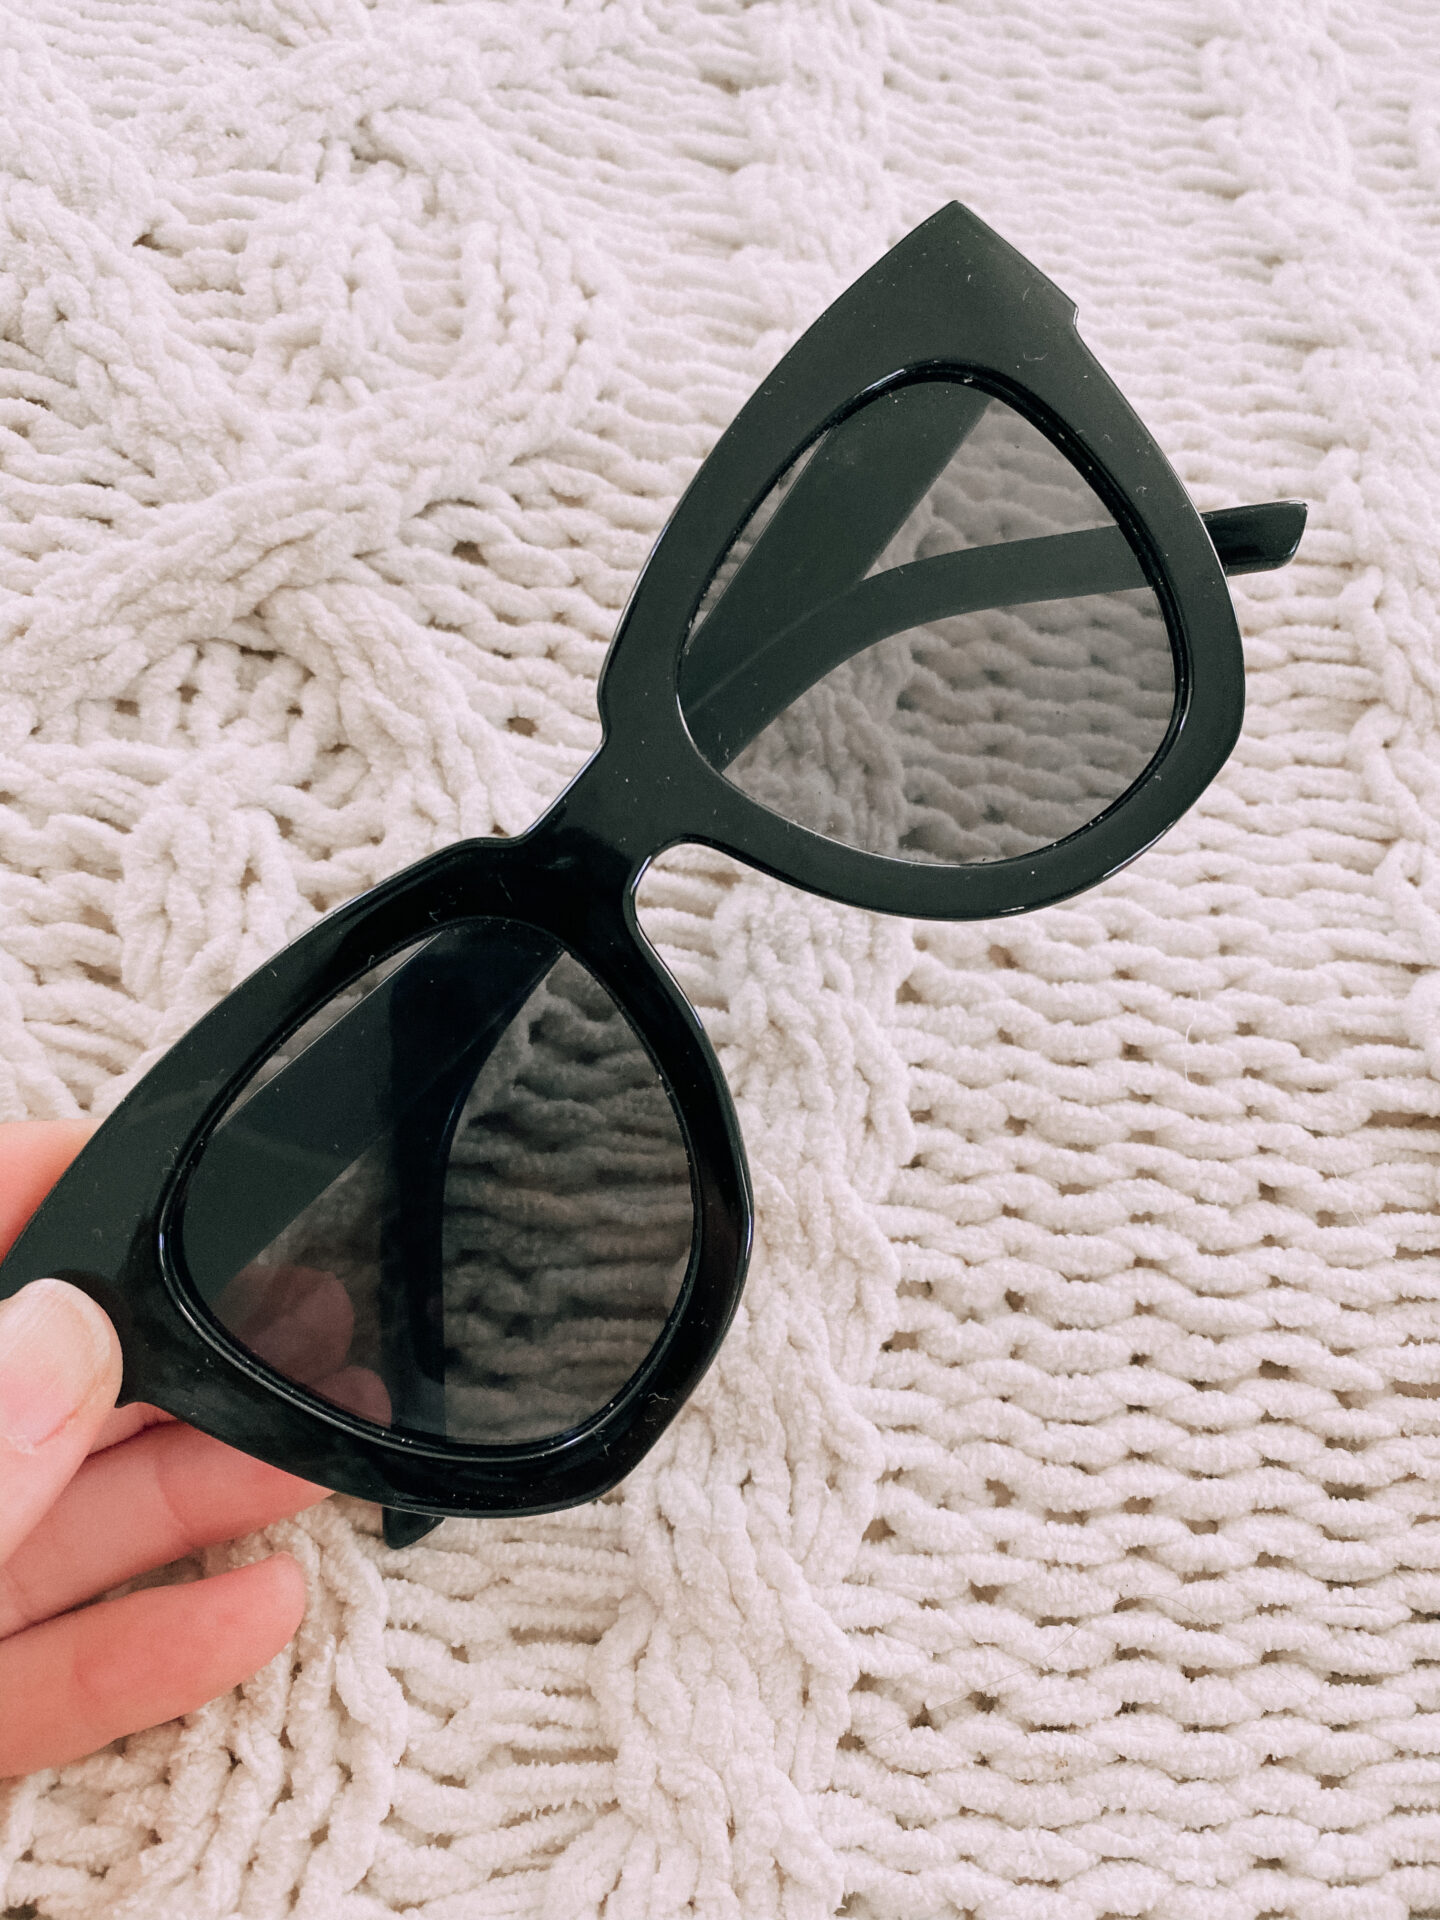 sunglasses from amazon